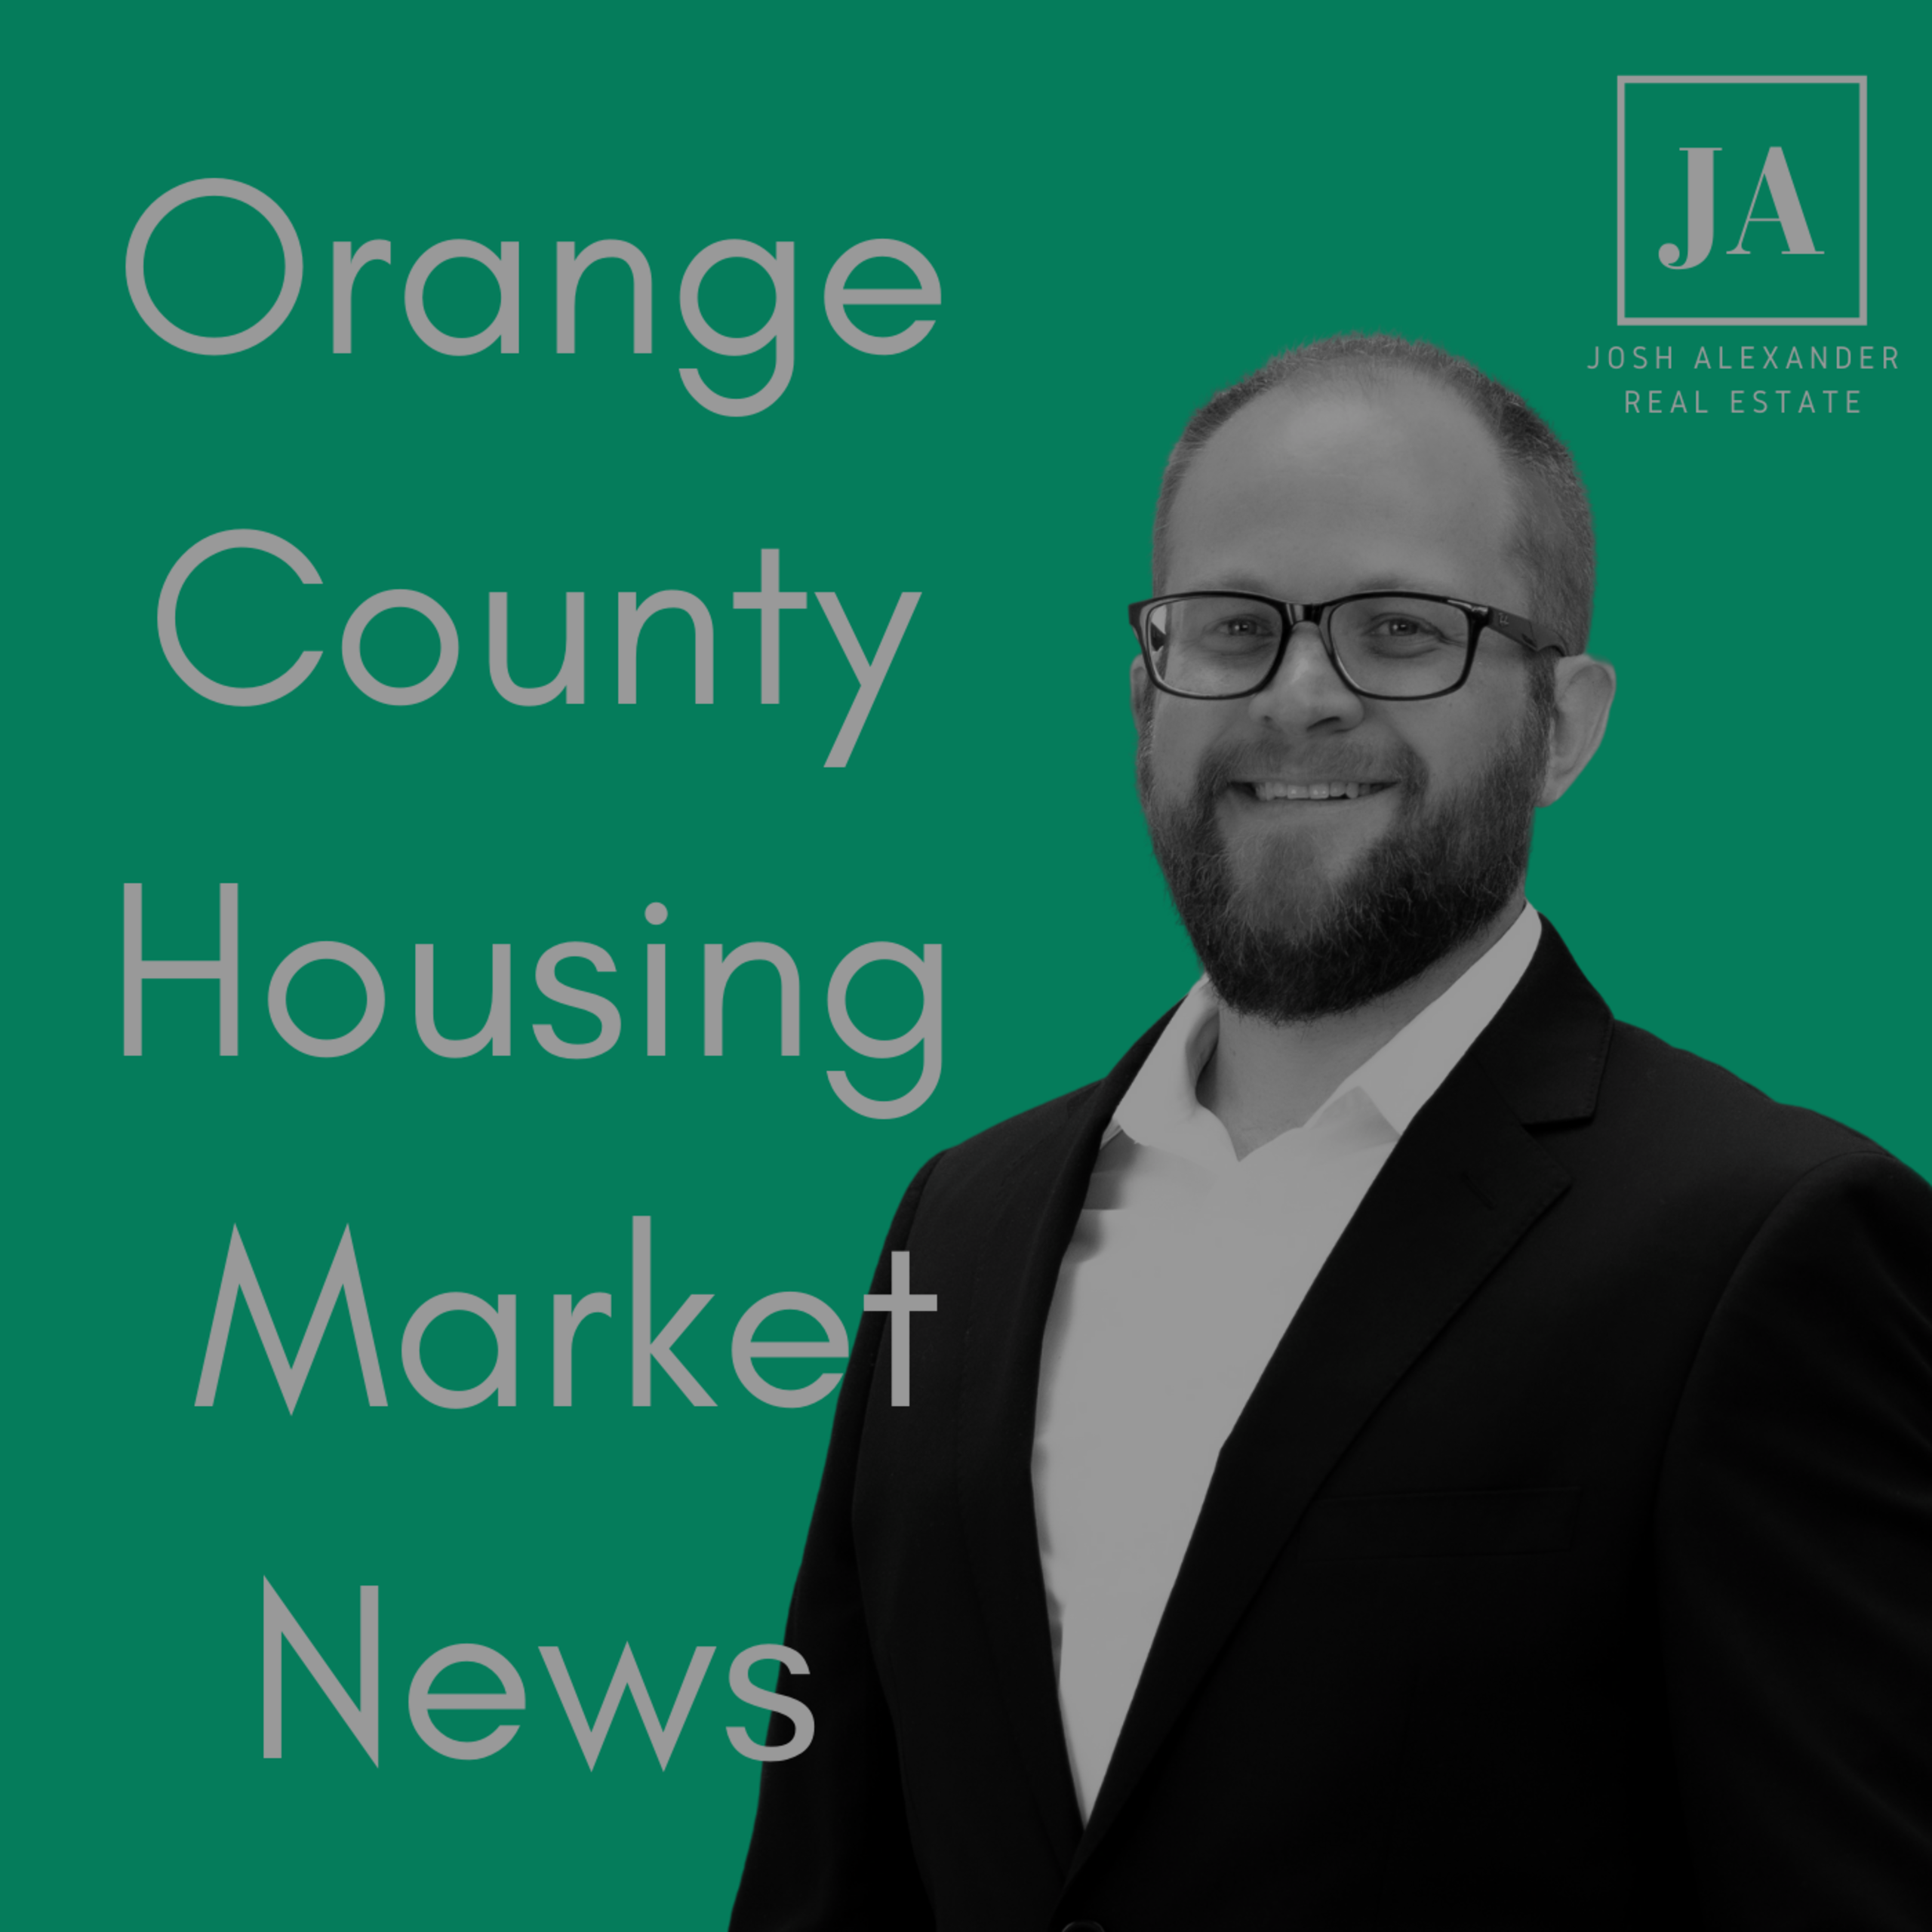 OC Housing Market News Podcast Now Available!